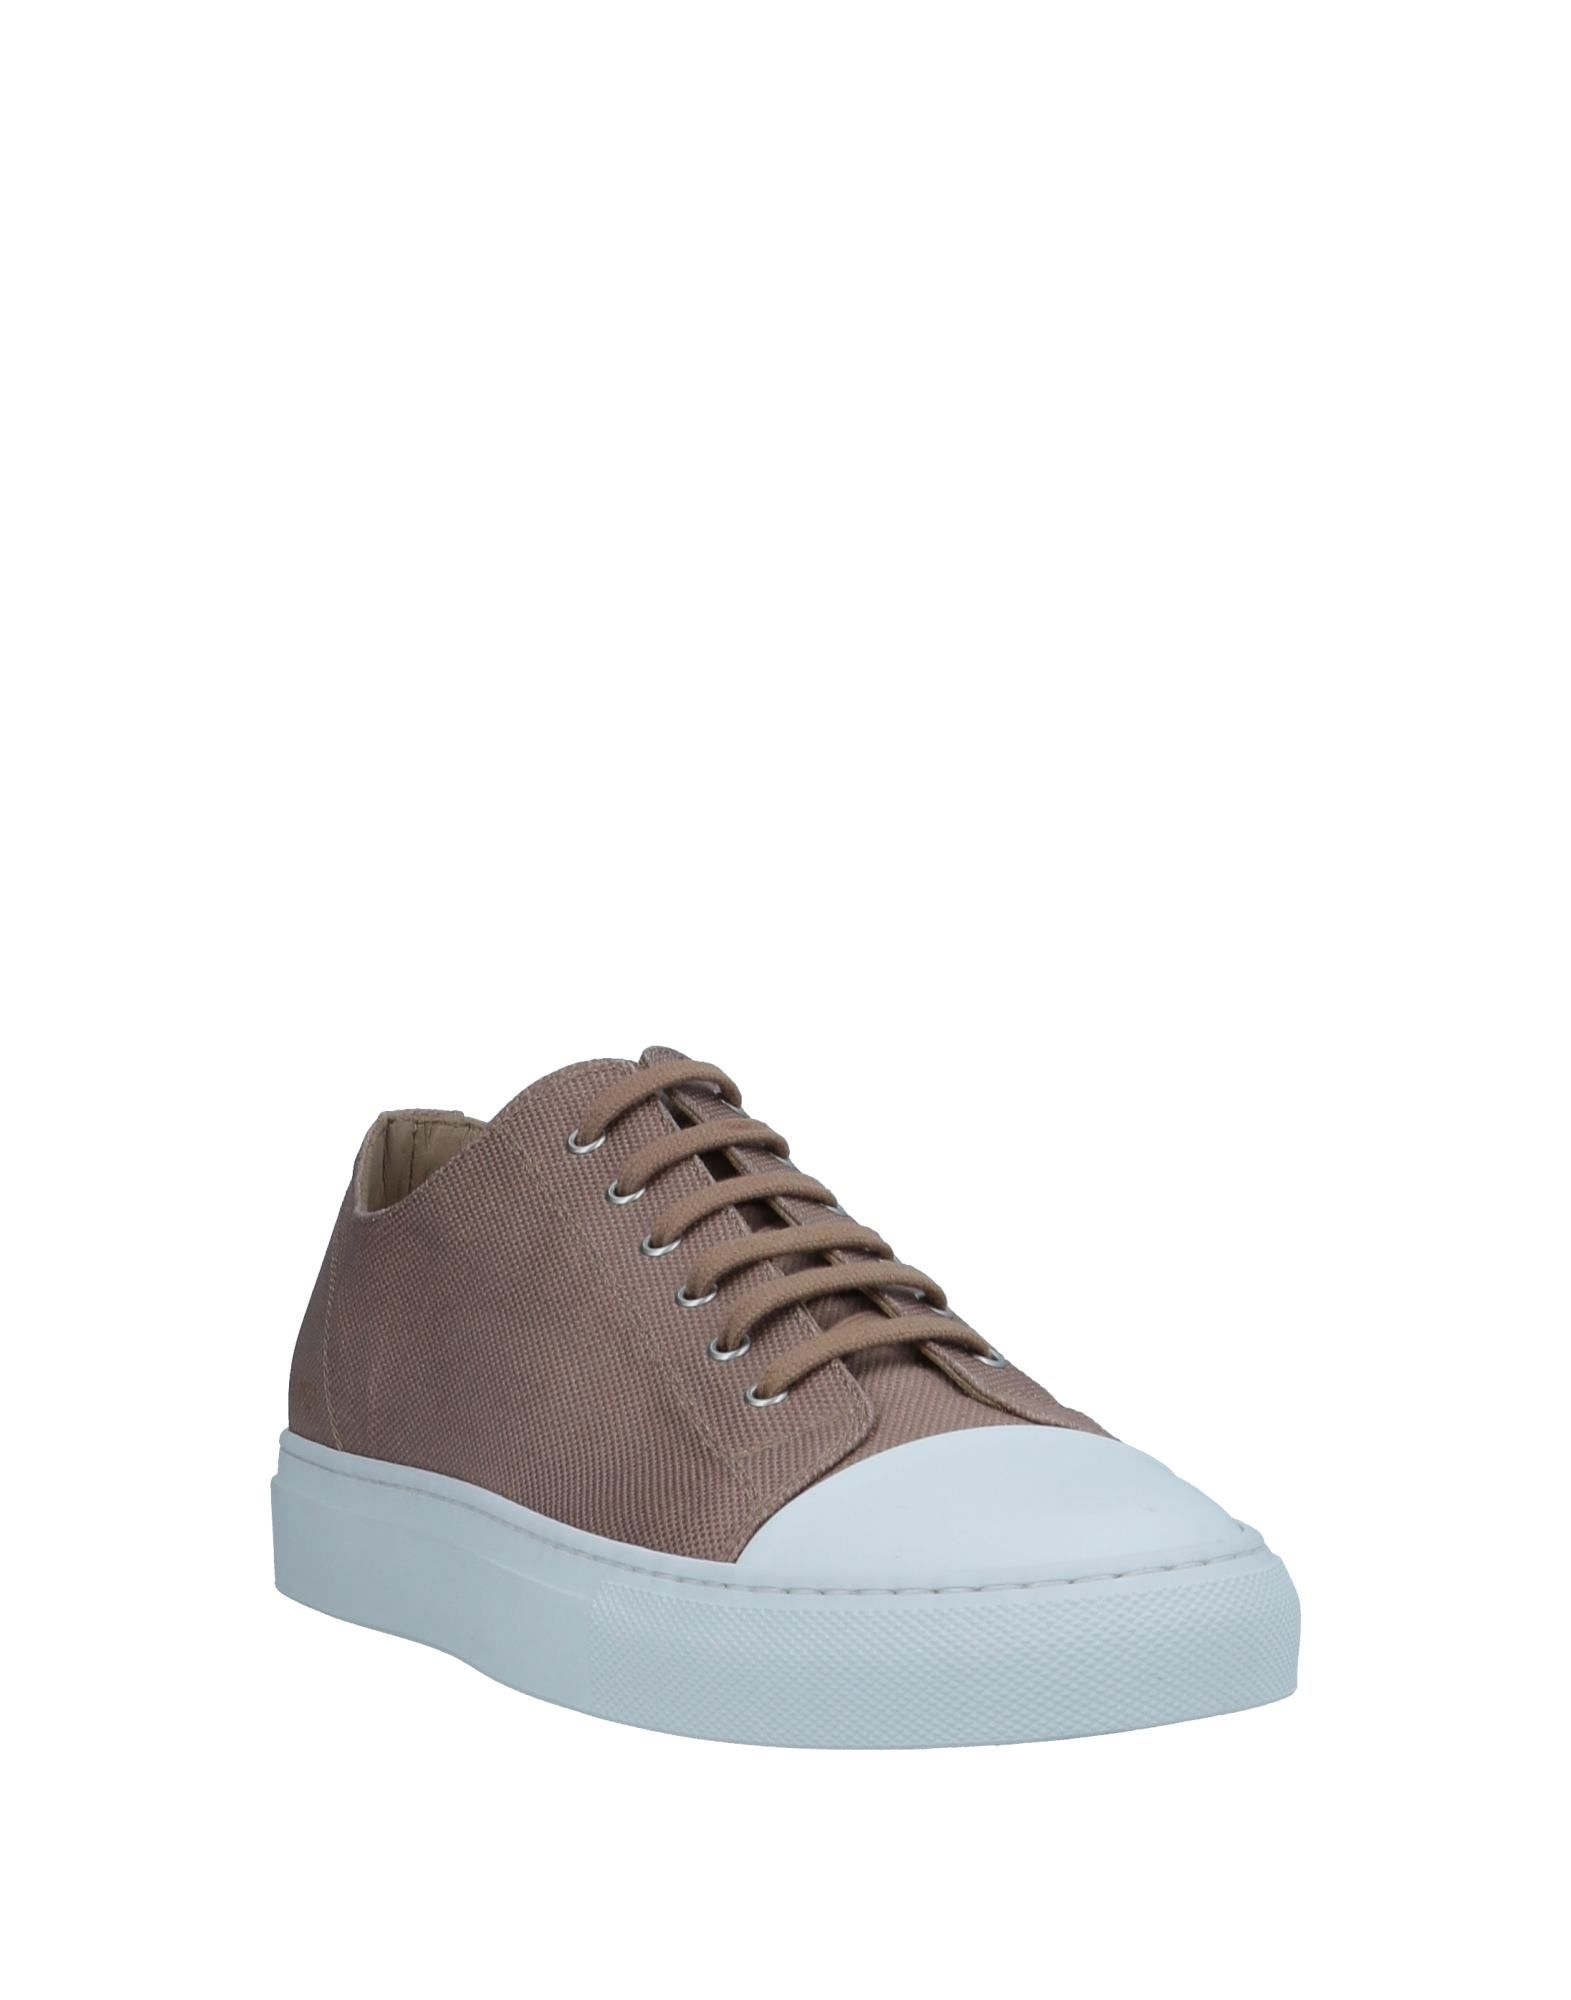 Common Projects - Uomo - Projects 11593227RA 7b4d70